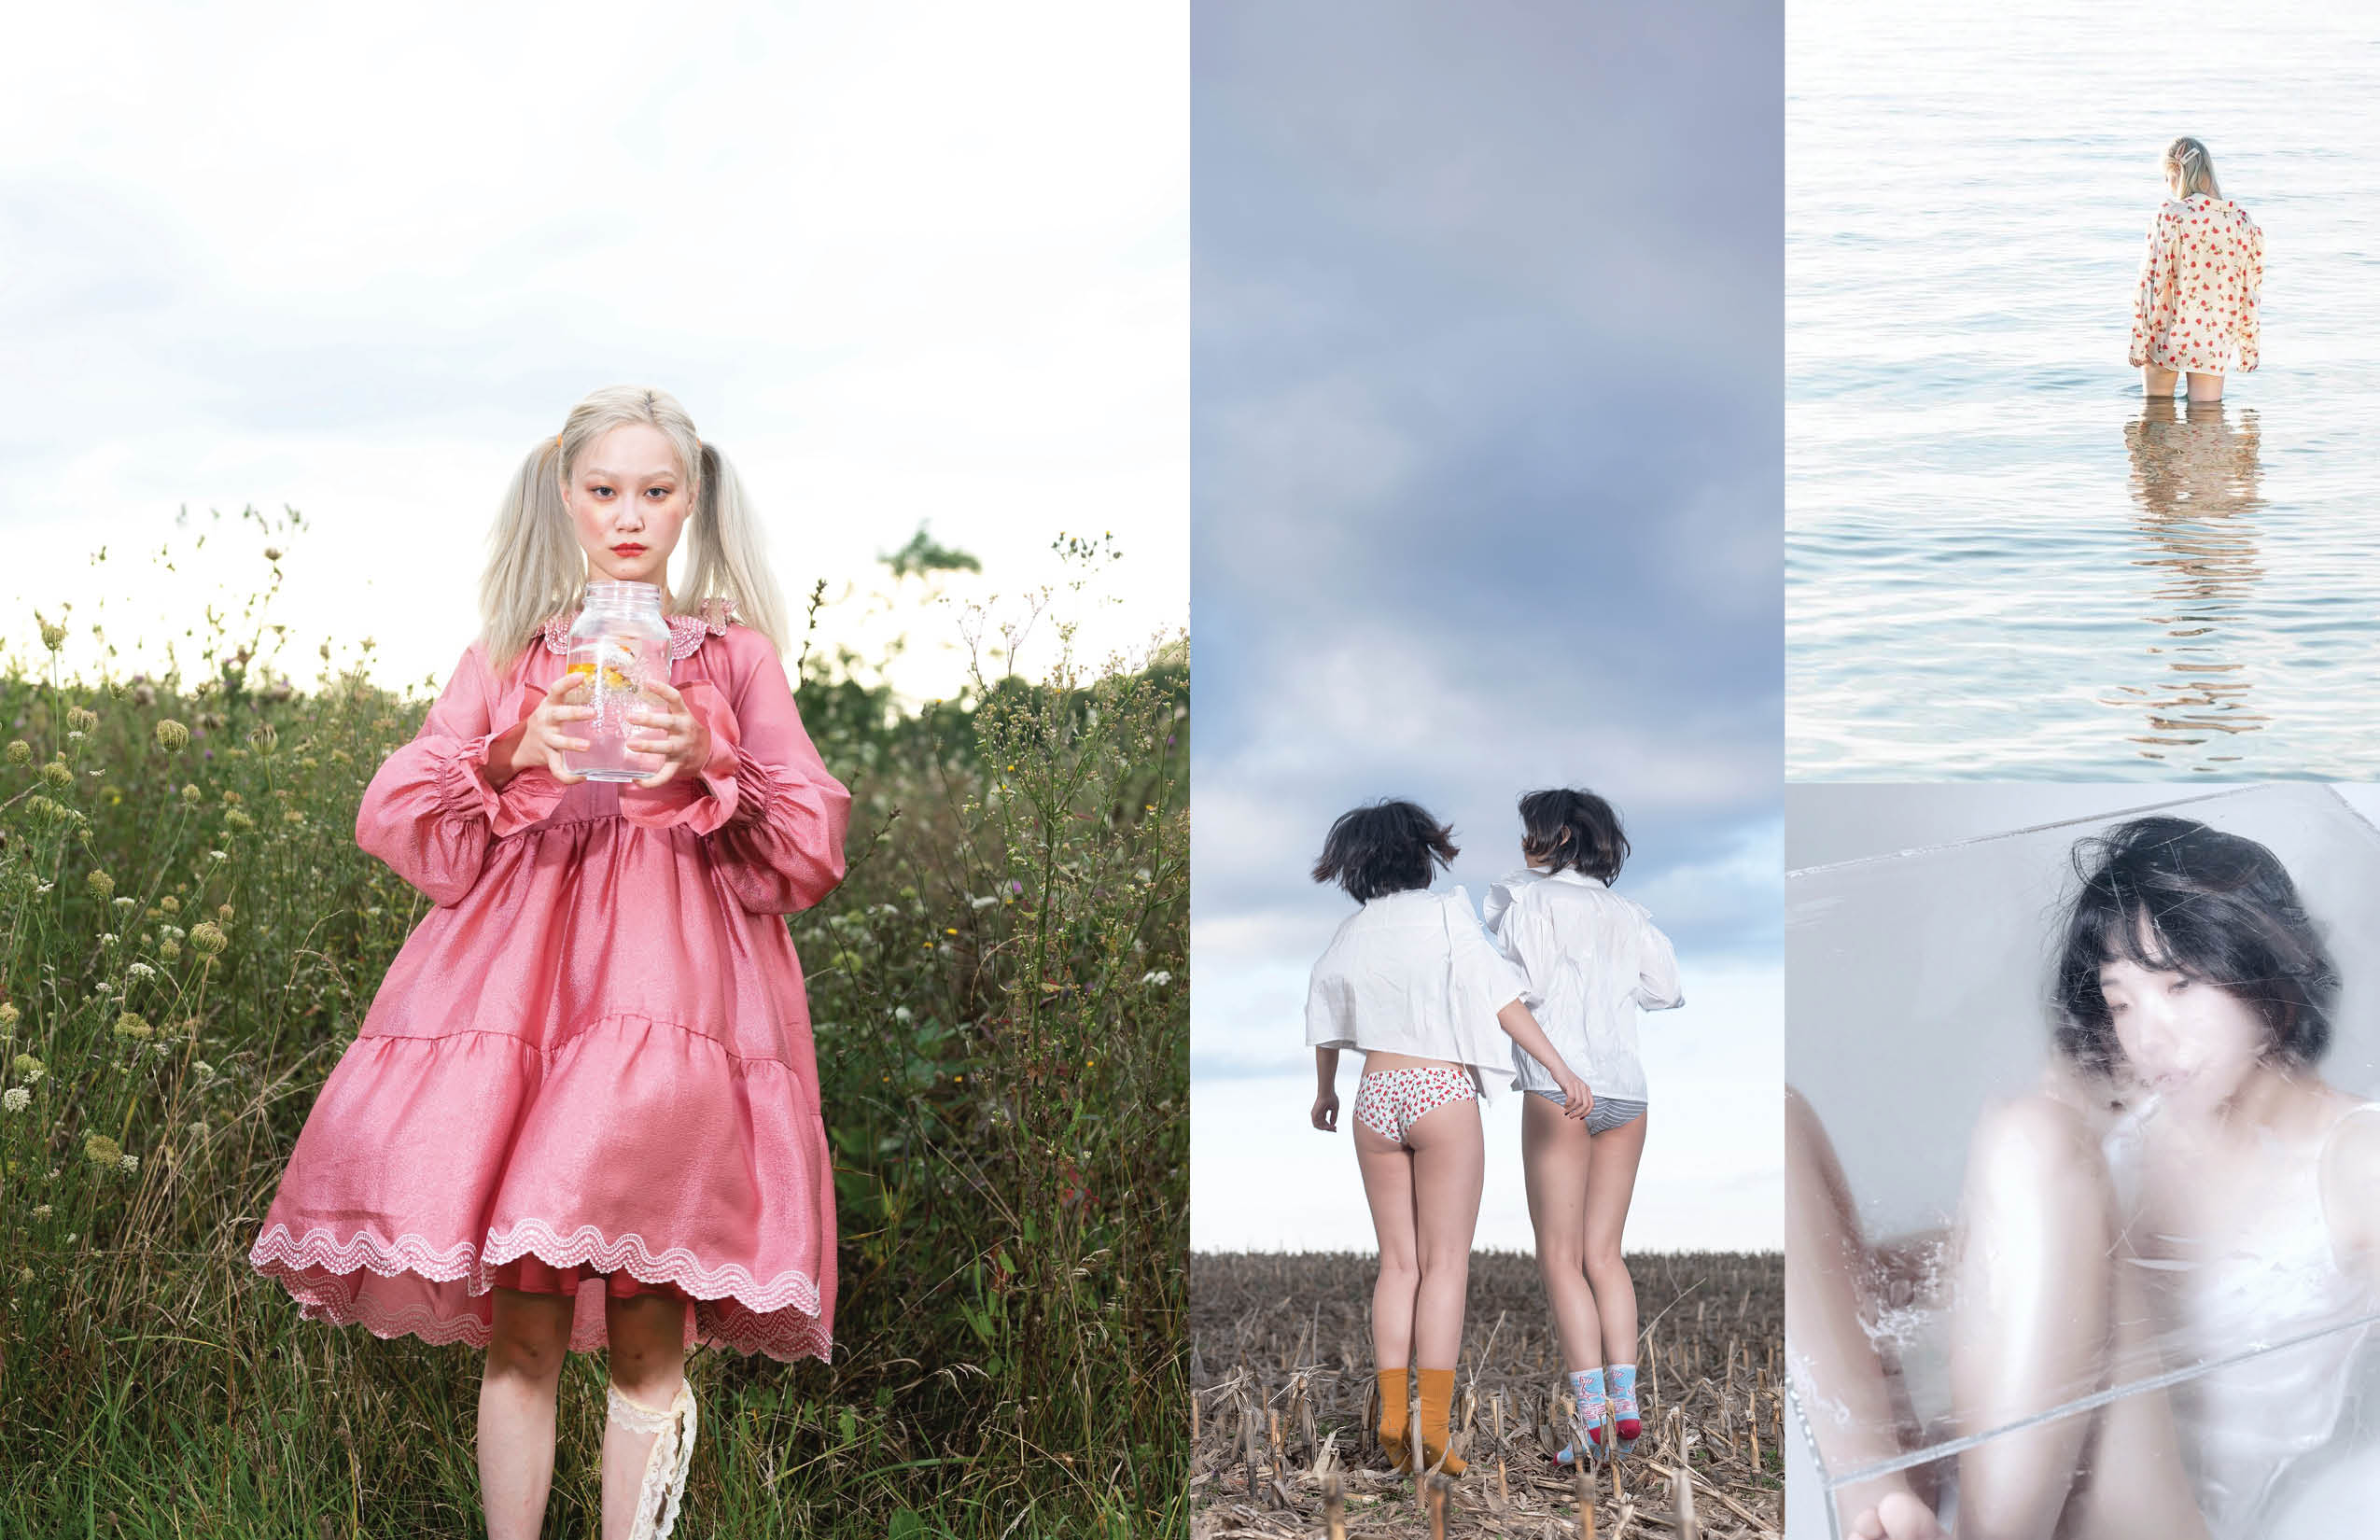 Some Places Left Behind by Menghan Tsai for Keyi Magazine